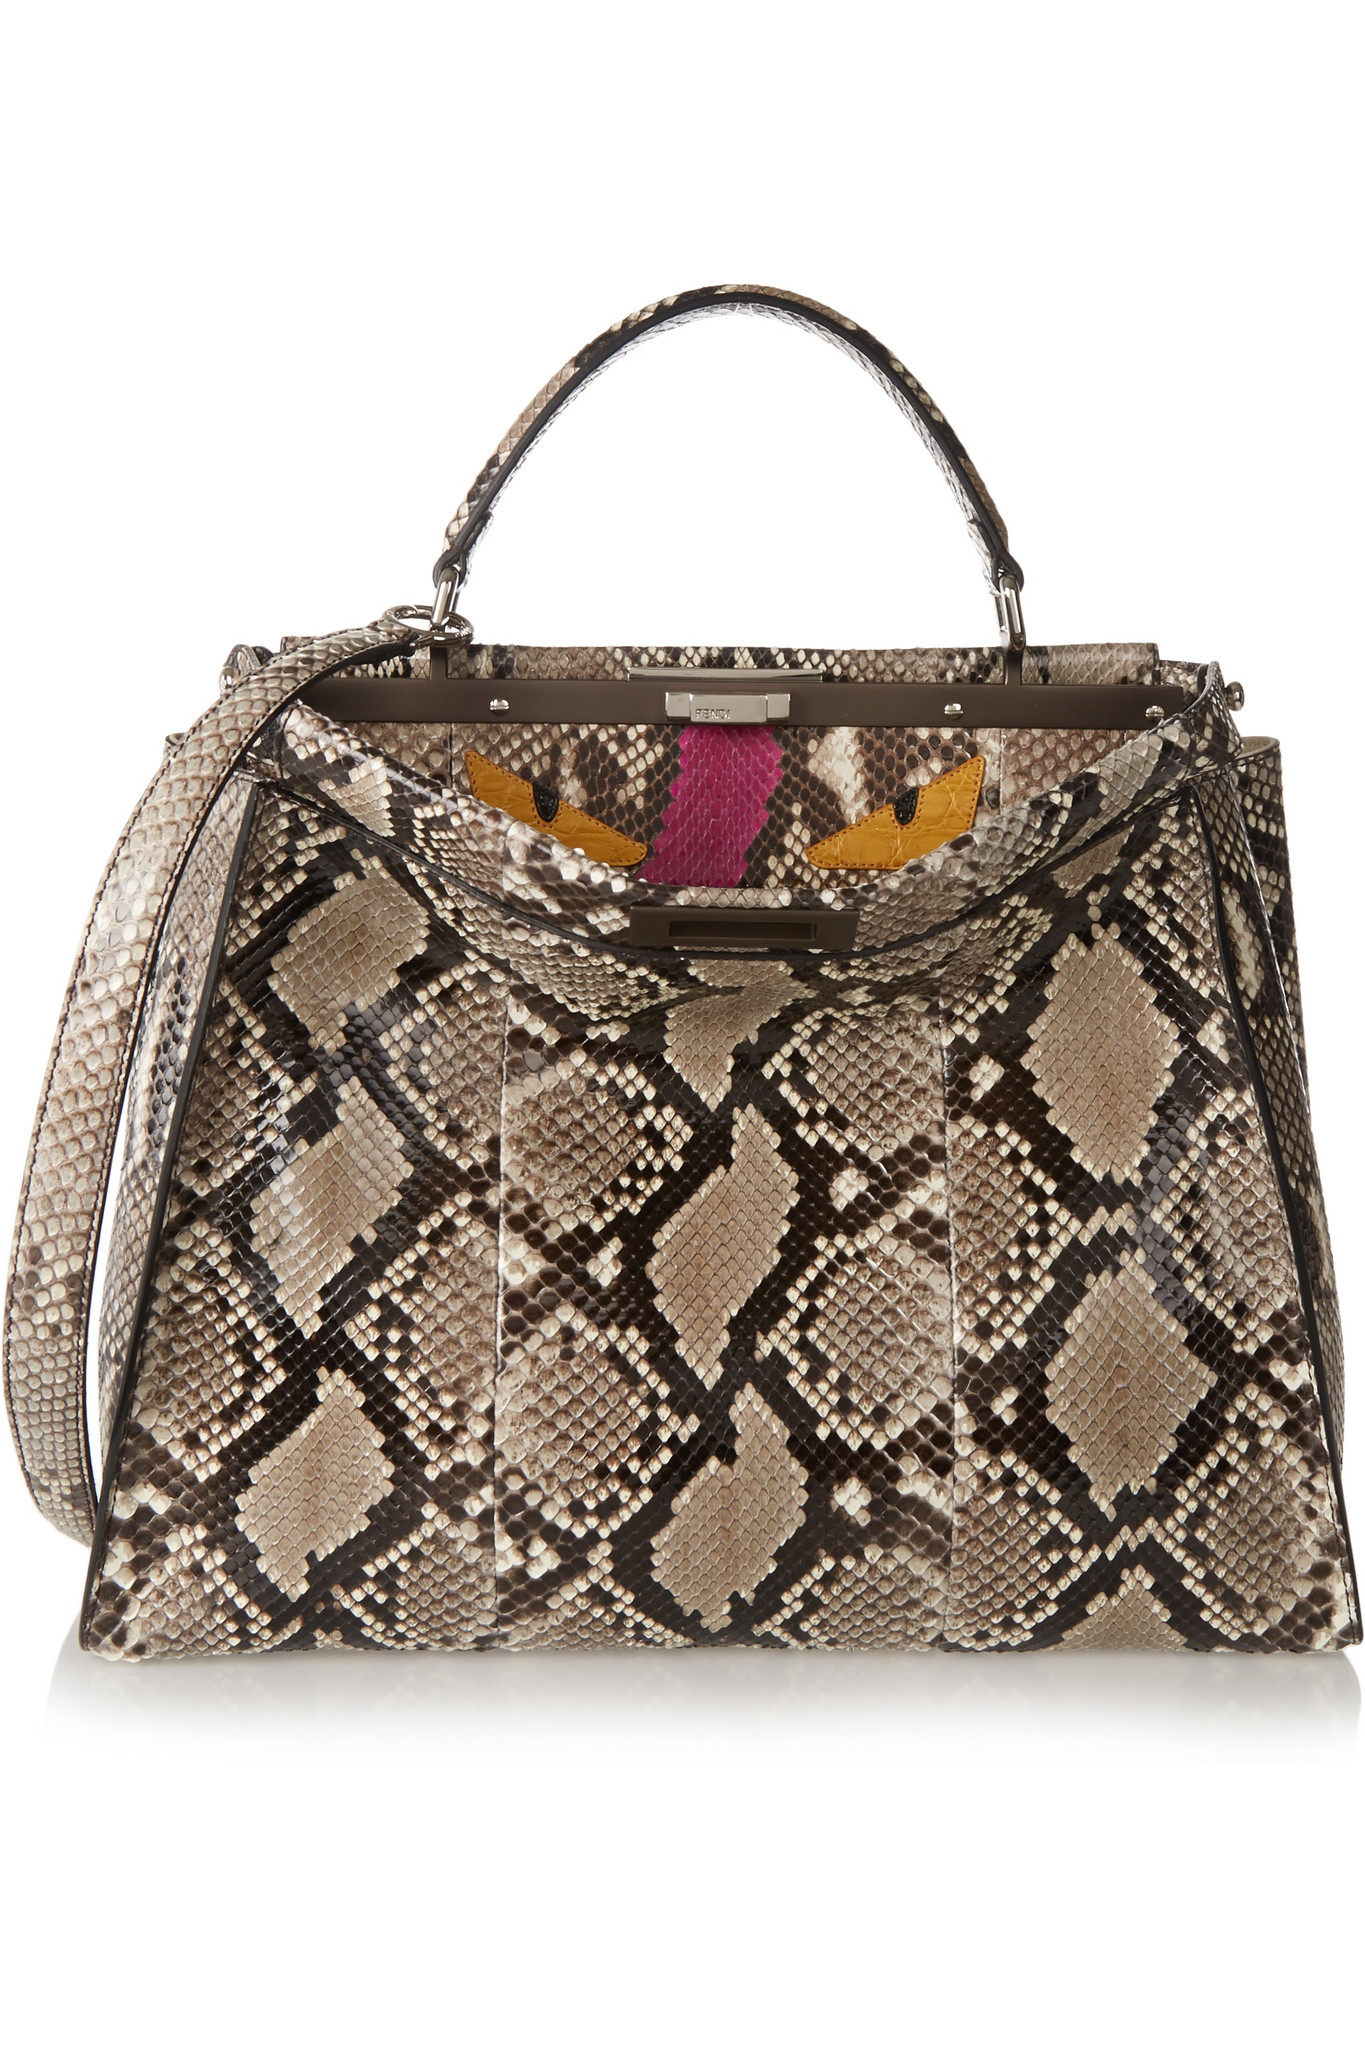 52ca8ffcf1 Fendi Peekaboo Large Python And Crocodile Tote - Lyst